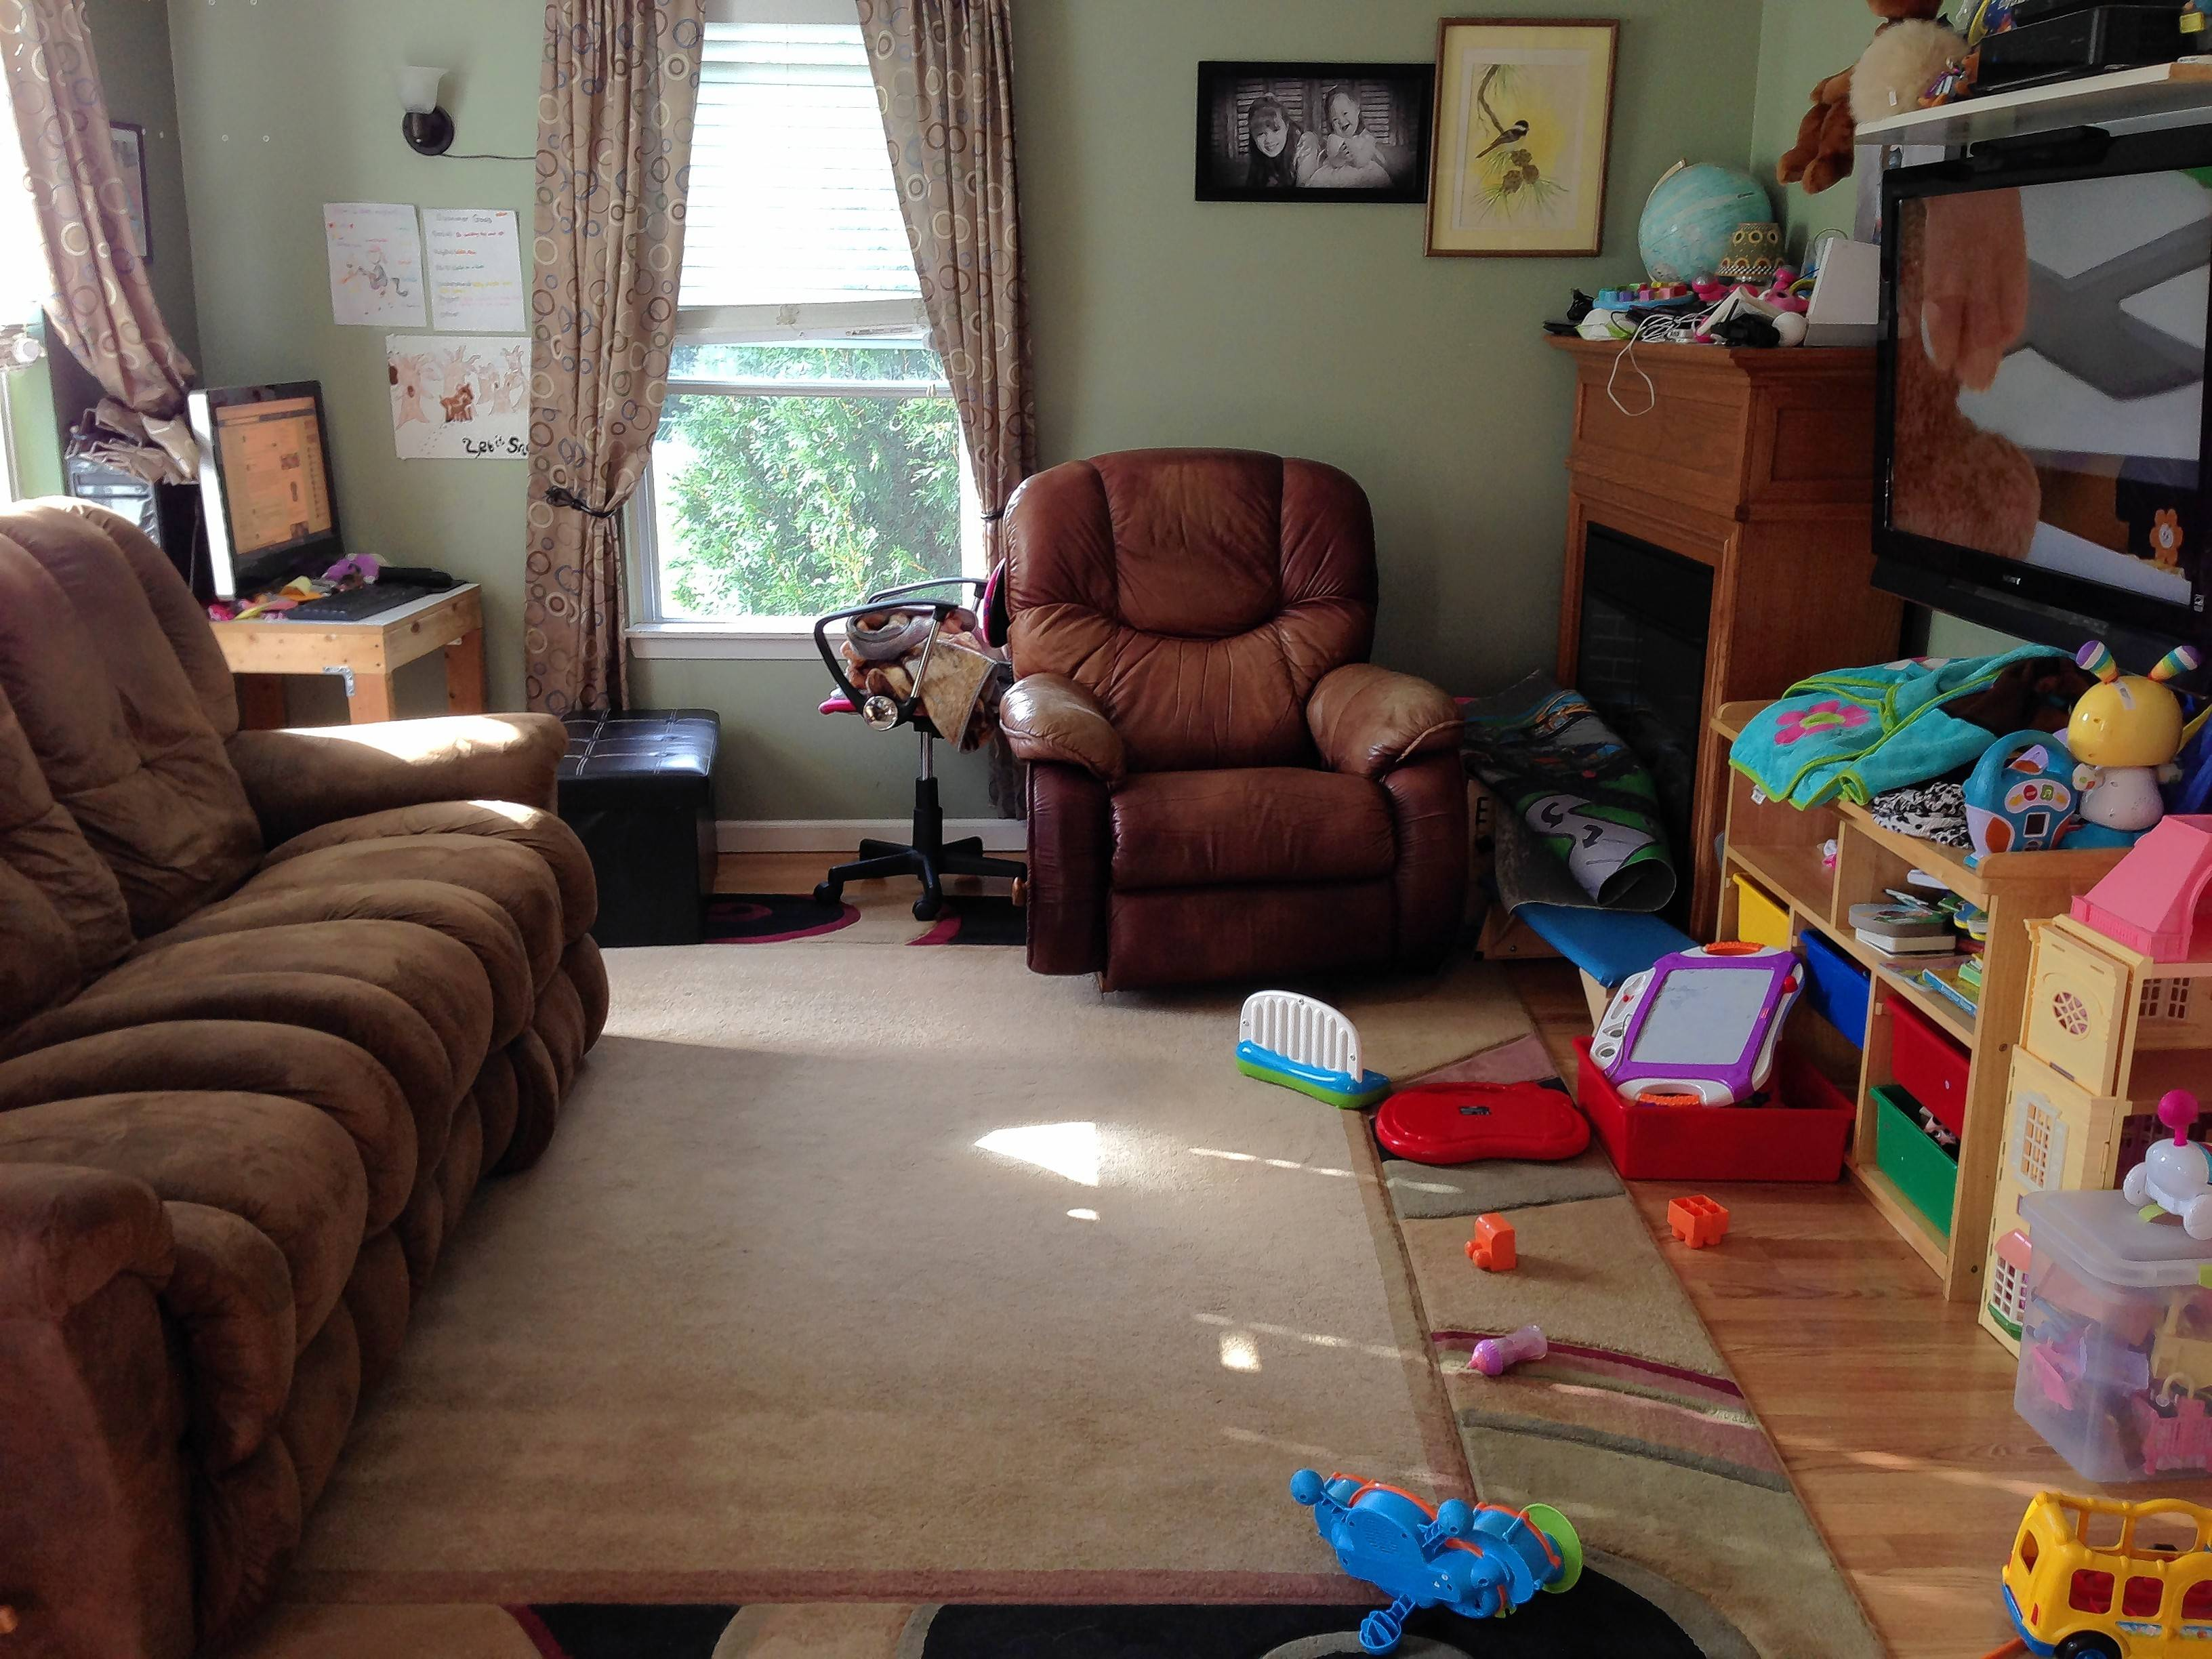 Cindy Walku0027s Cramped Living Room Lacks Storage Needed To Hide Away Toys. Part 57